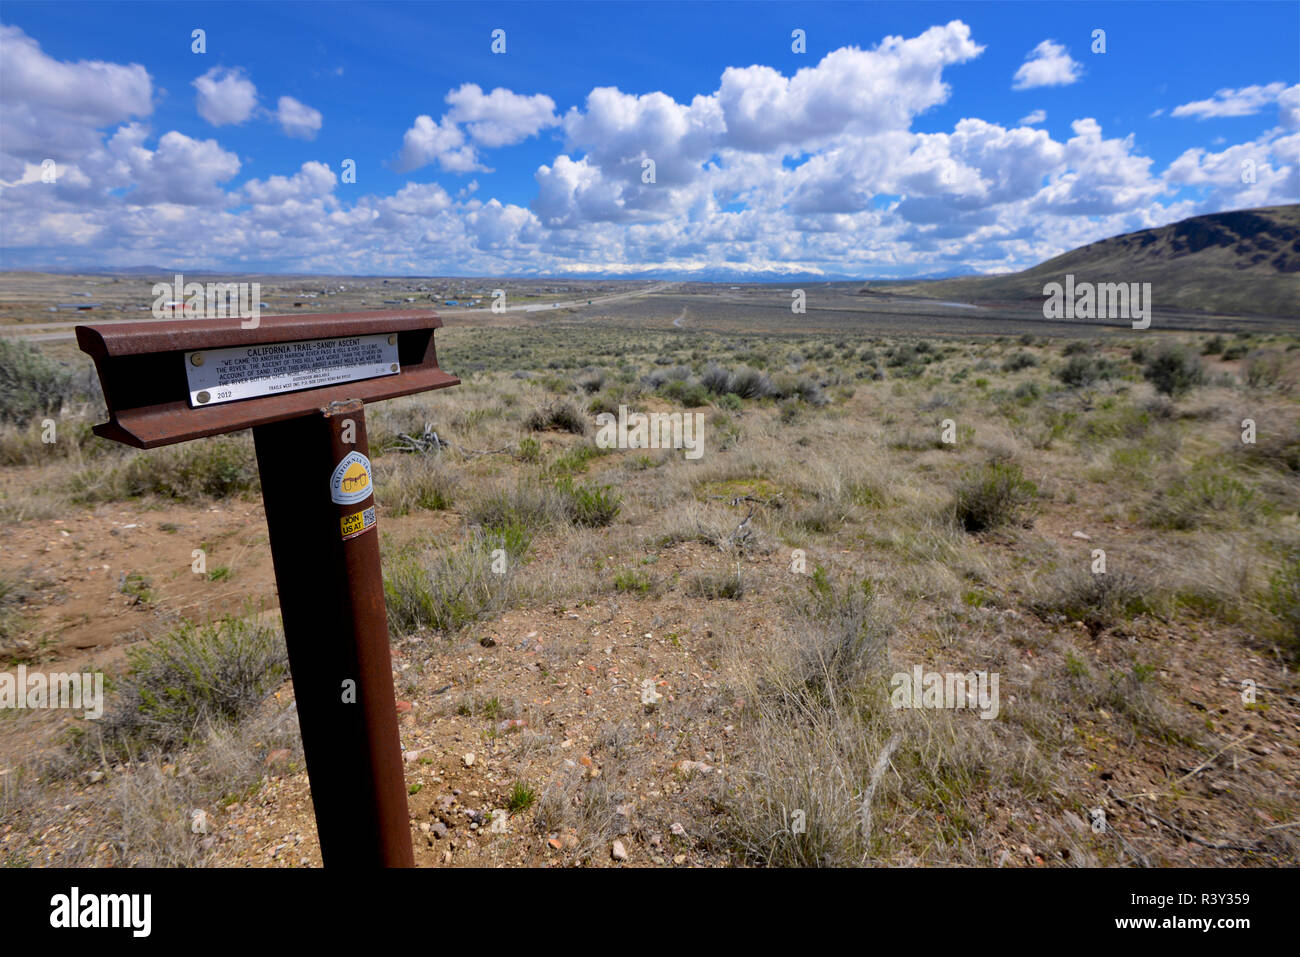 A trail marker on the California Trail, west of Elko on I80, marks where overland emigrants struggled up a sandy hill along the Humboldt River. - Stock Image